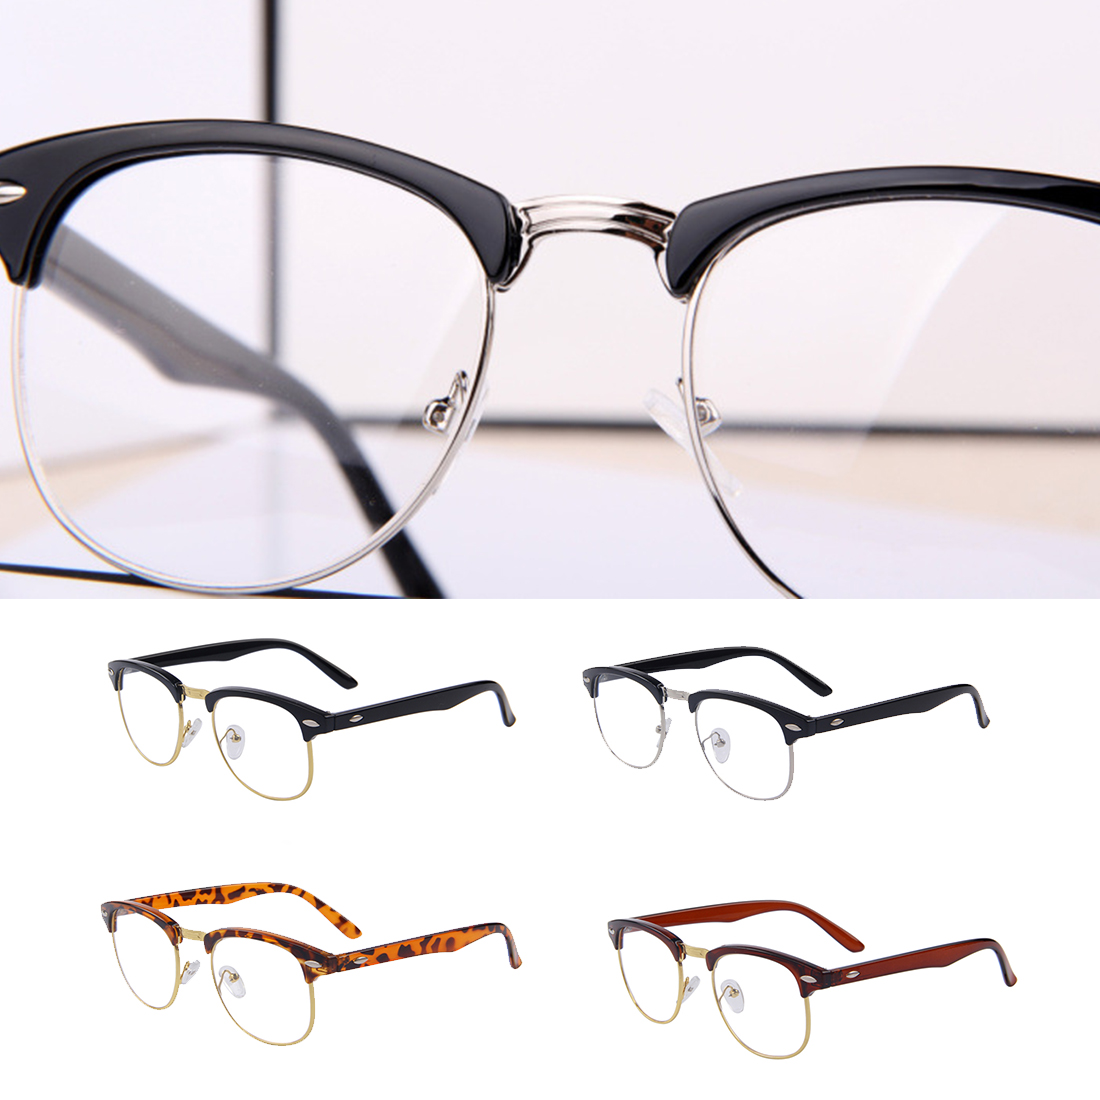 Online Shop for metal eyeglasses Wholesale with Best Price